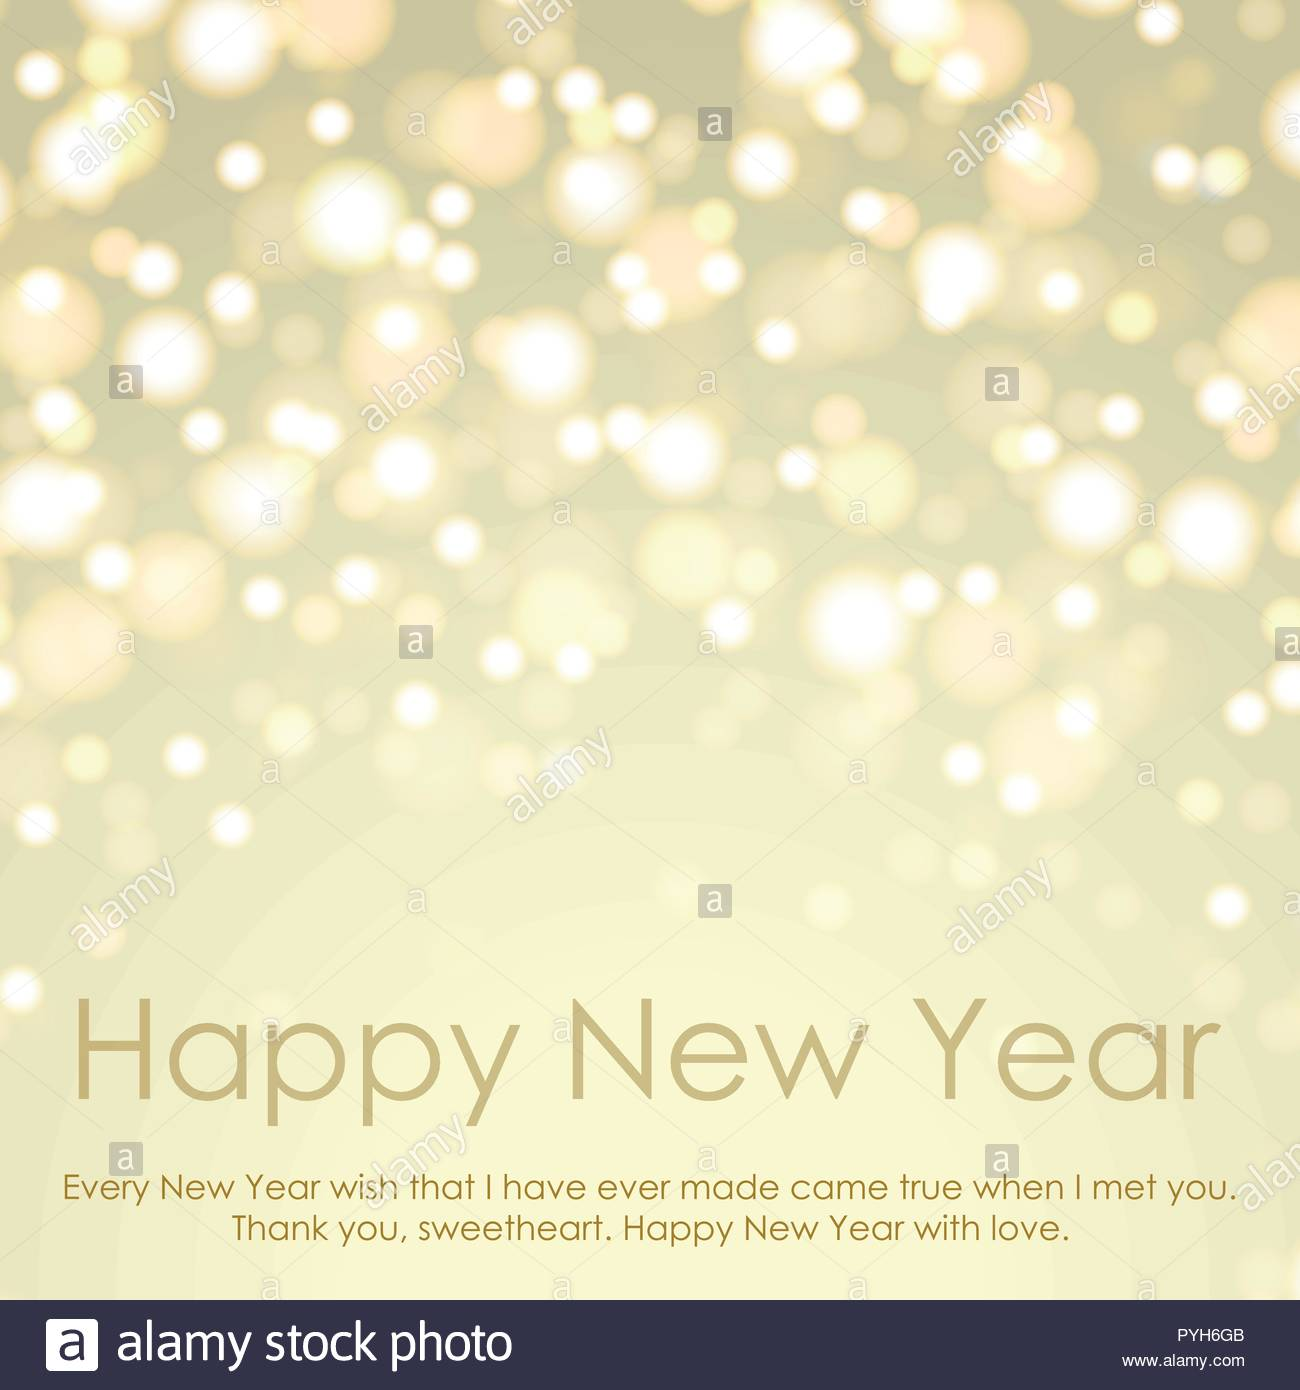 1300x1390 - Happy New Year Backgrounds 26